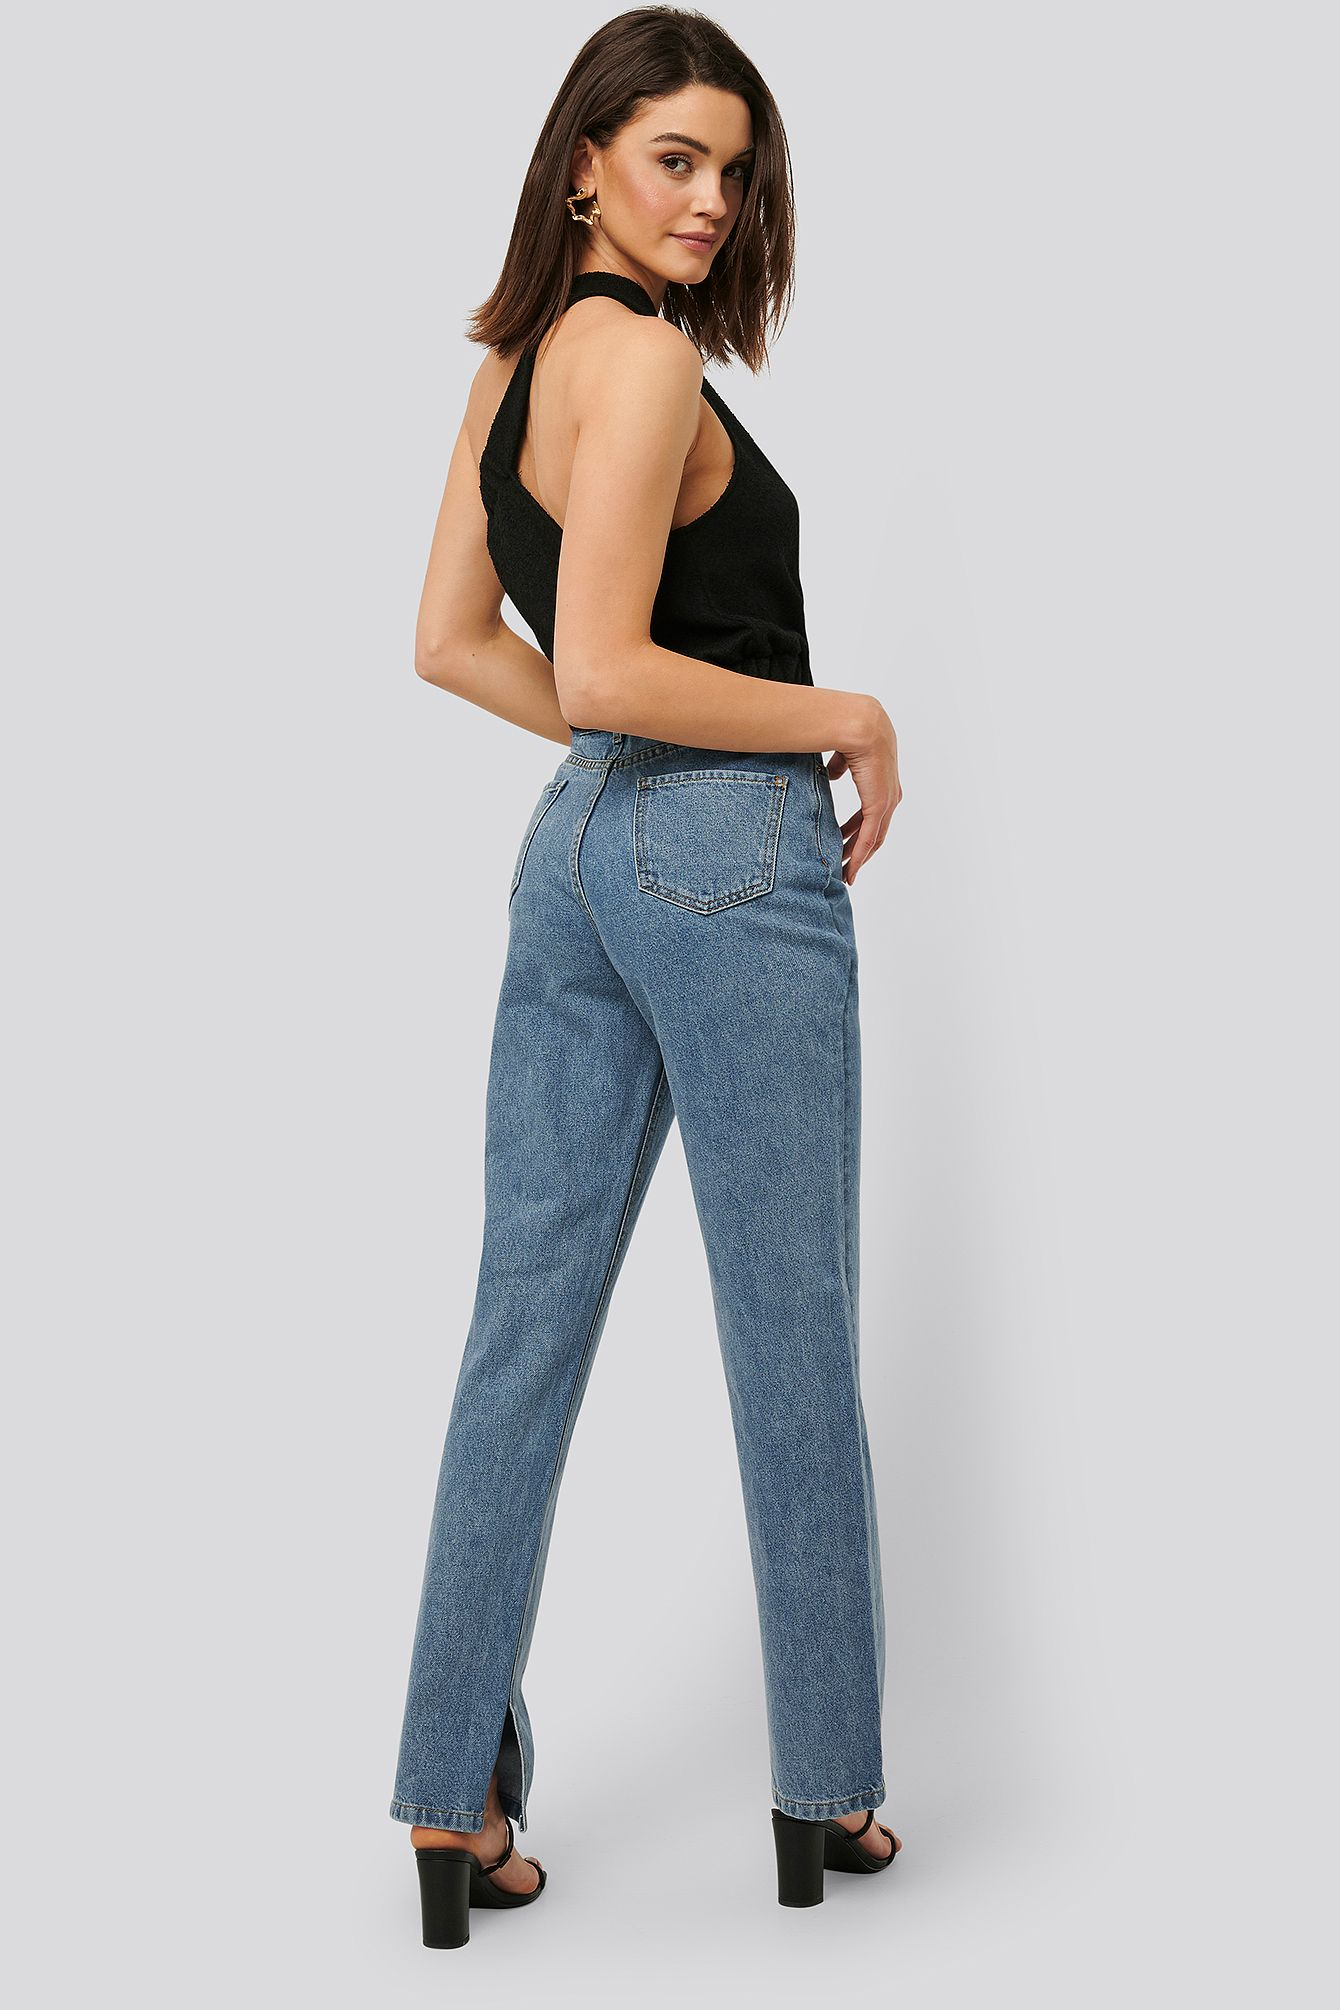 Photo of Gerade Jeans Mit Hoher Taille